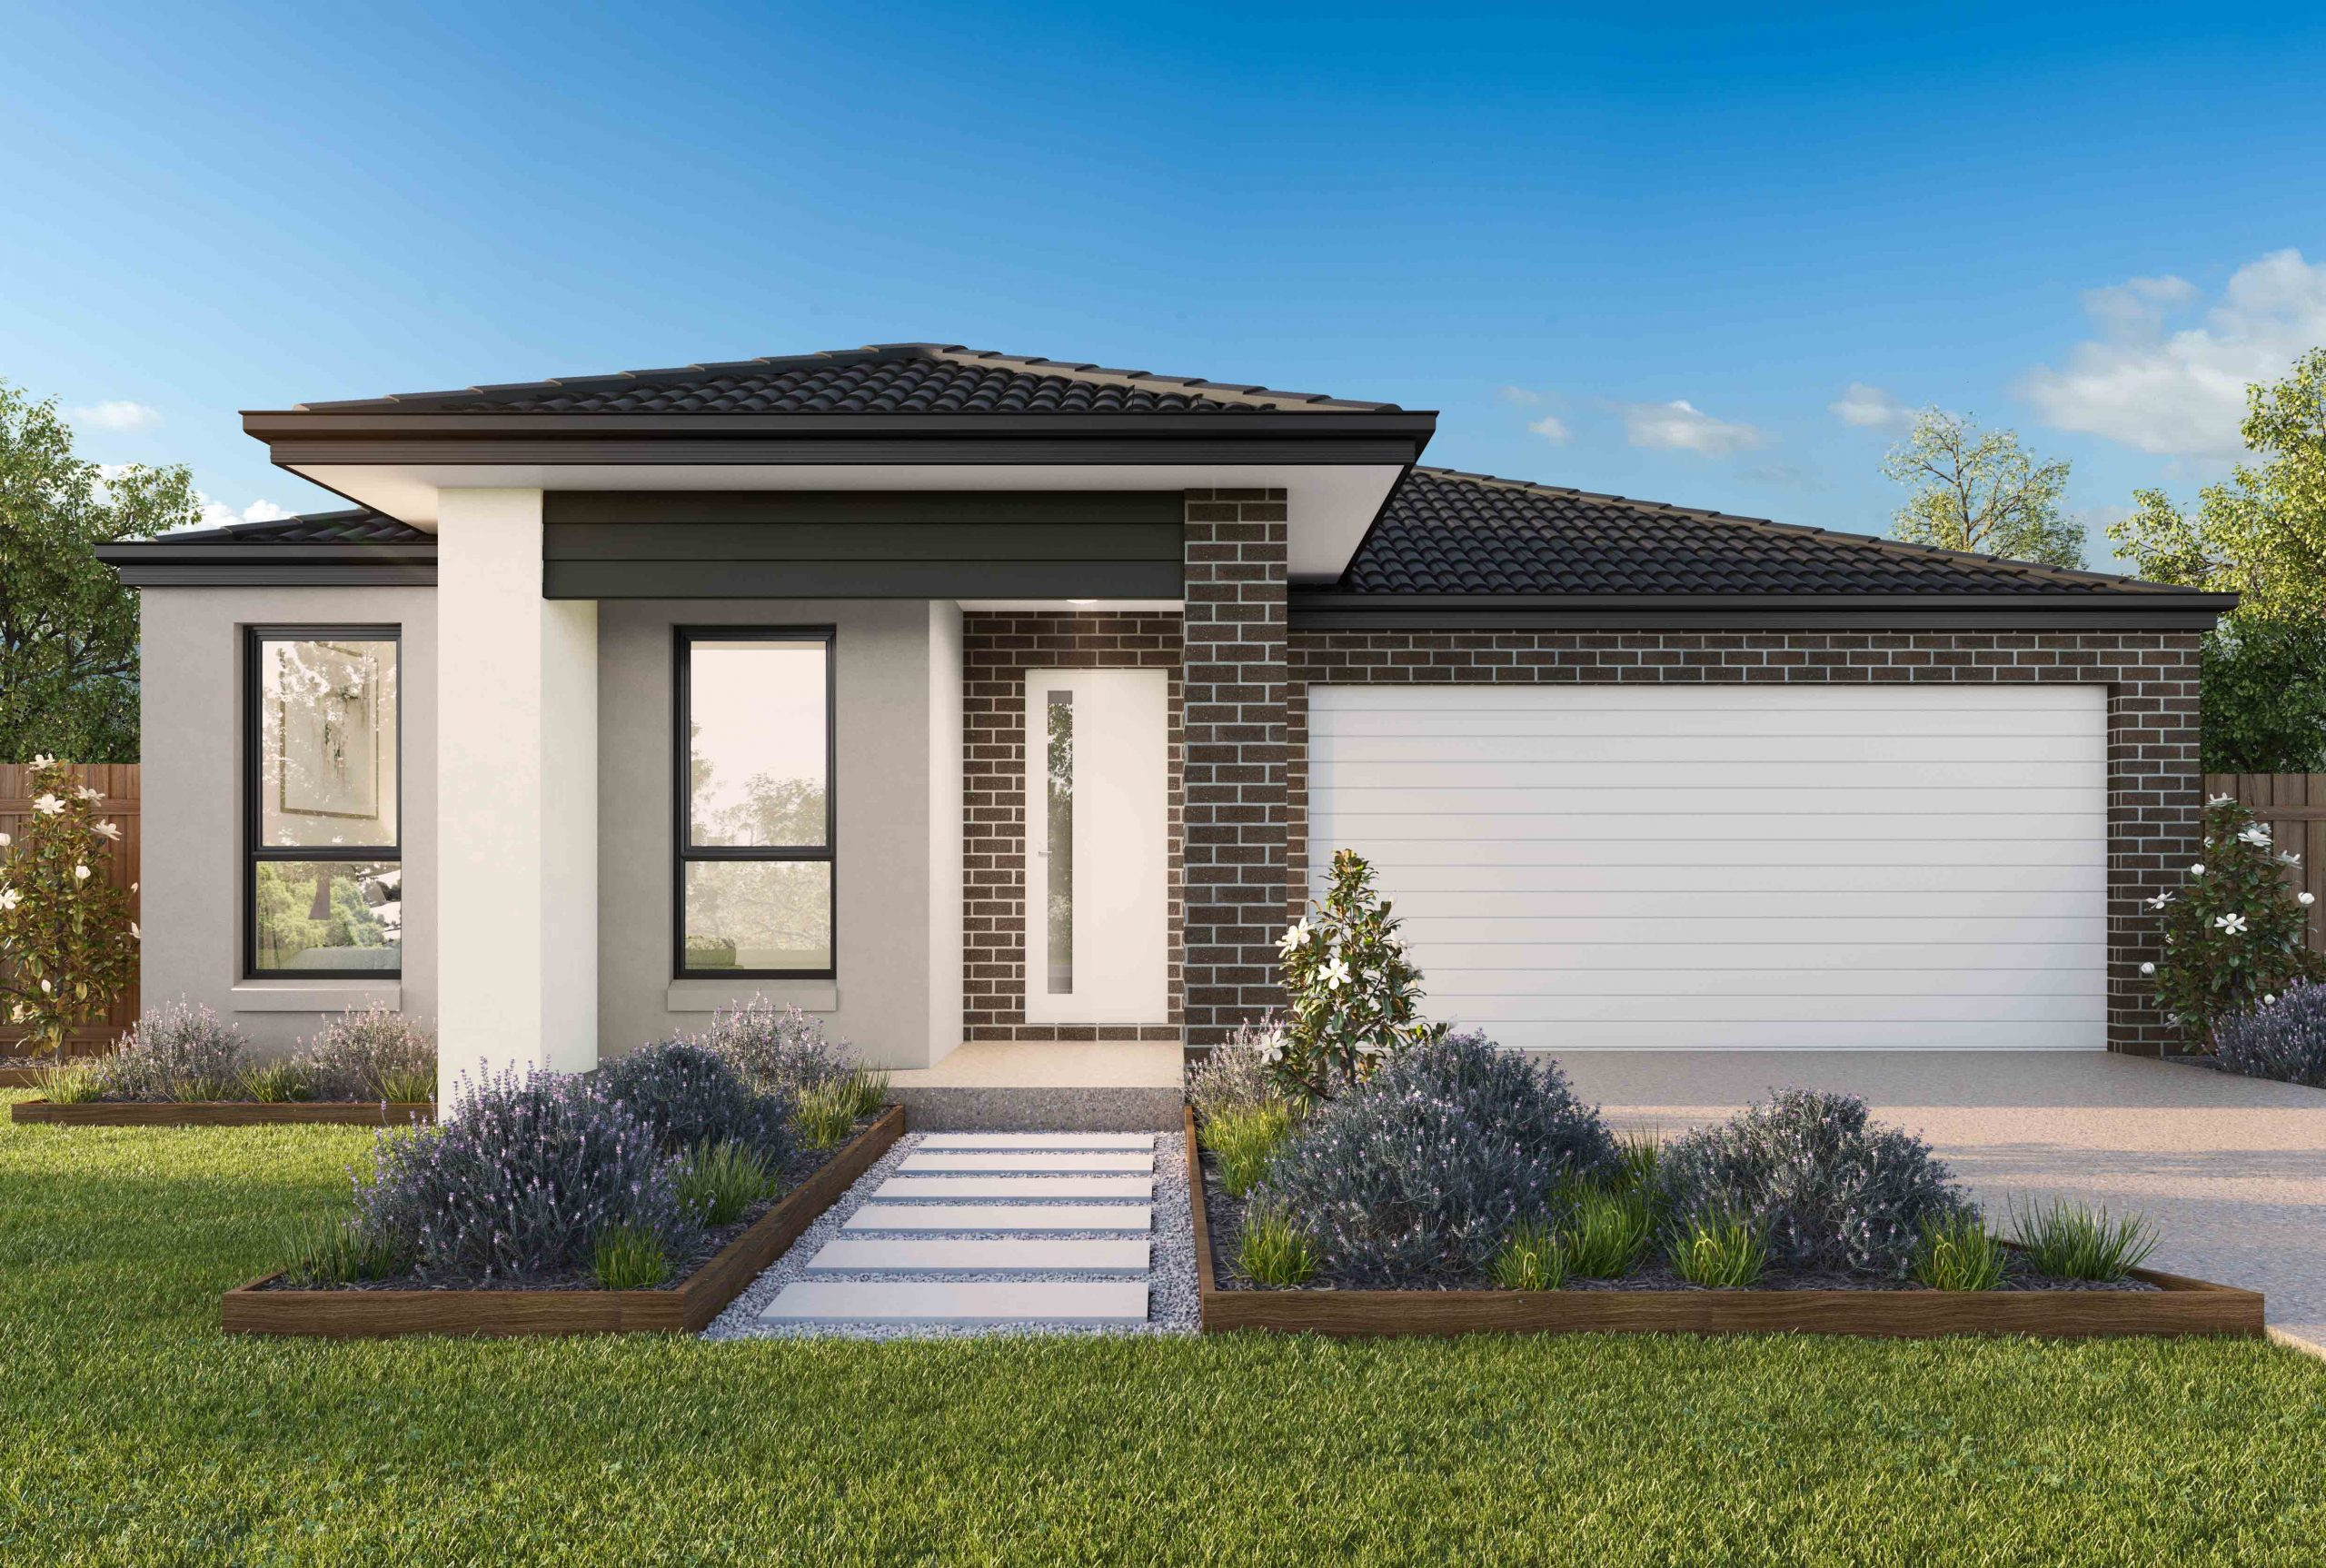 Lot 214 Grande Belmond Avenue